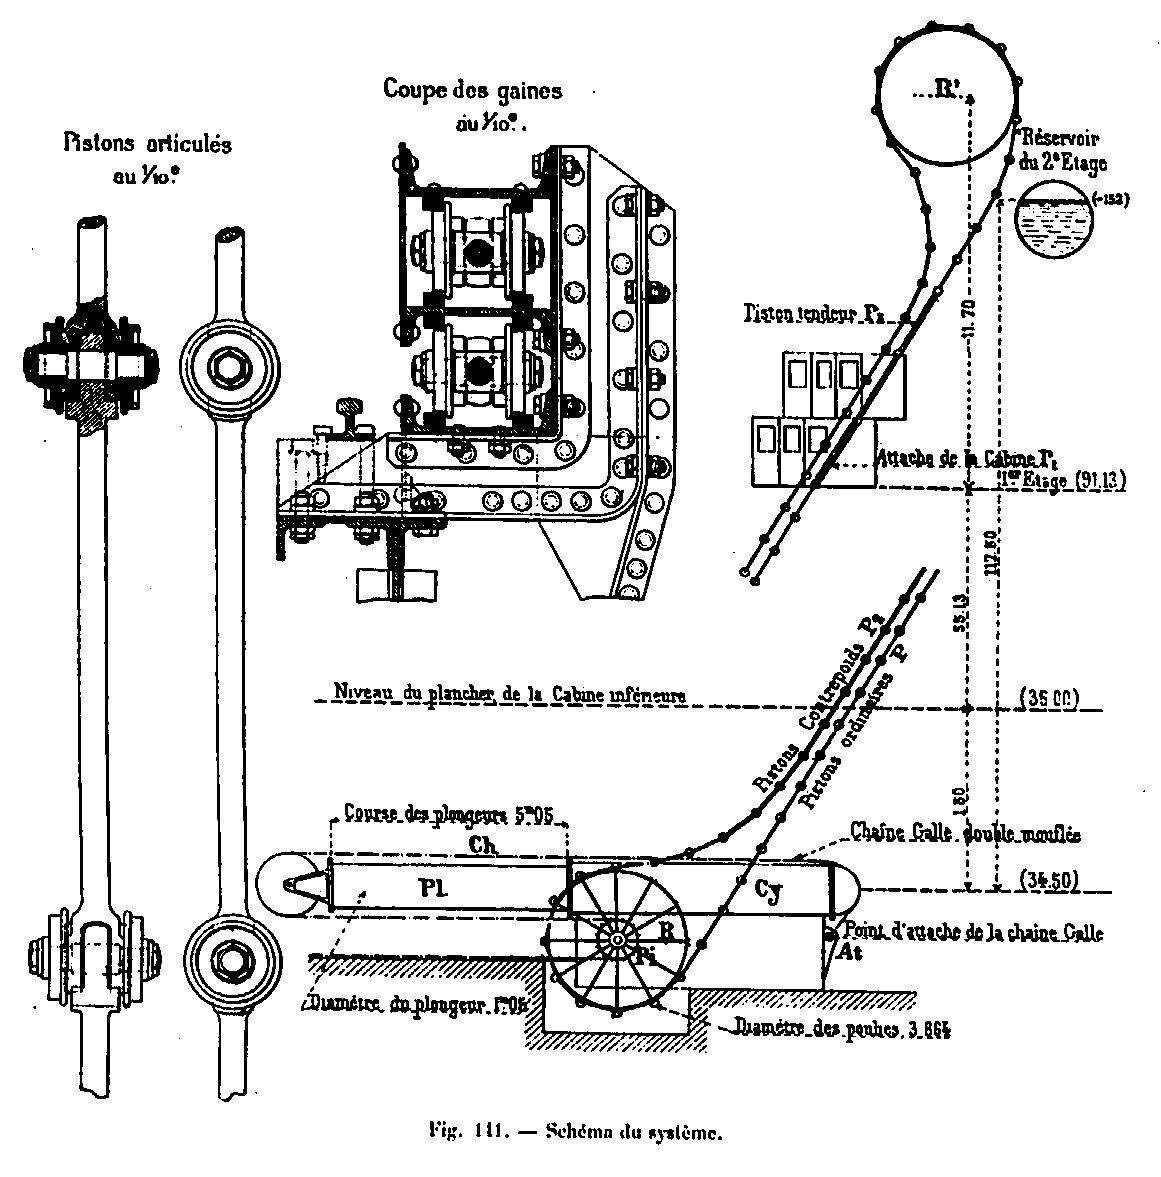 Elevators Of The Eiffel Tower Moreover Steam Engine Parts Diagram On Simple Piston By Means Articulated Pistons To Turn Driving Wheels And Enter Divers In Cylinder See Diagrams Figs 1 2 Plate Xxiii